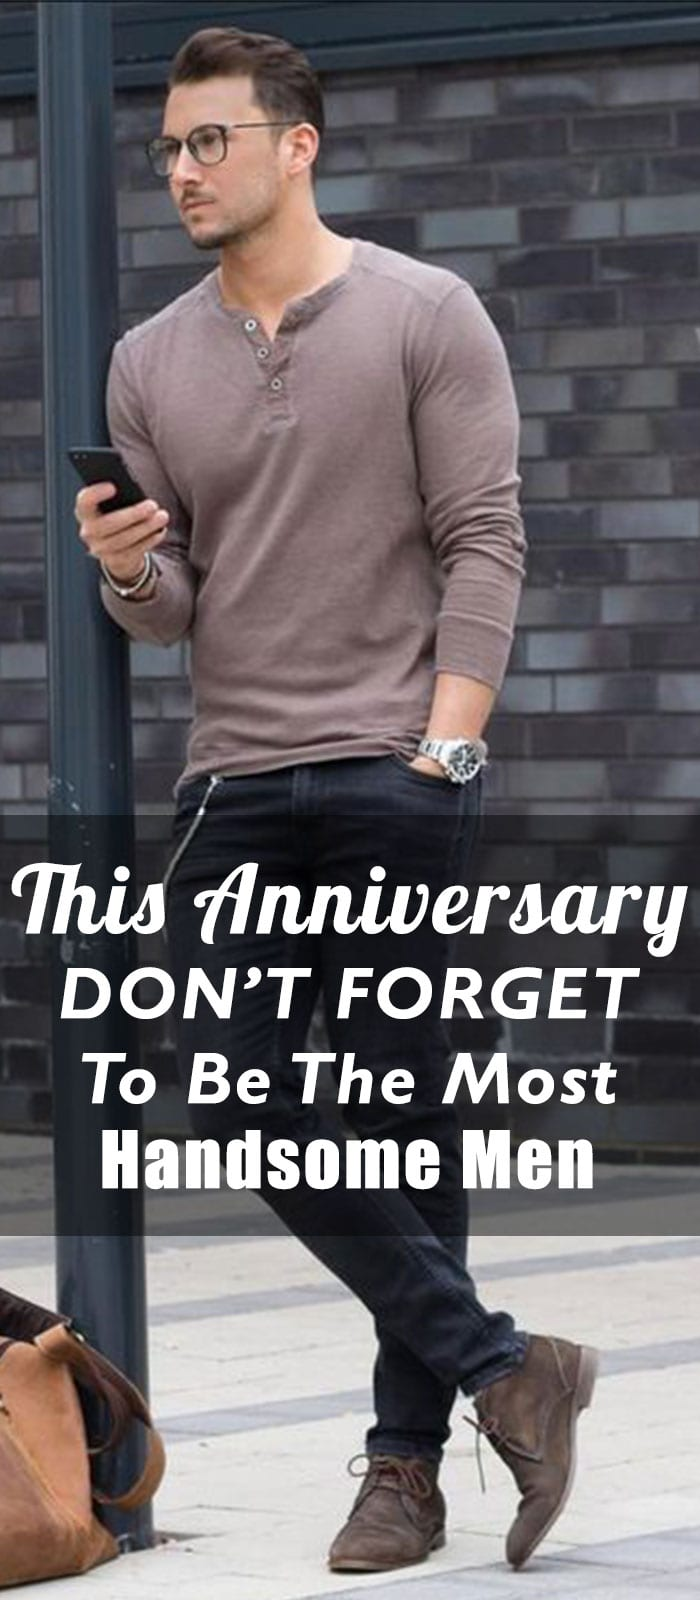 This Anniversary DON'T FORGET To Be The Most Handsome Men